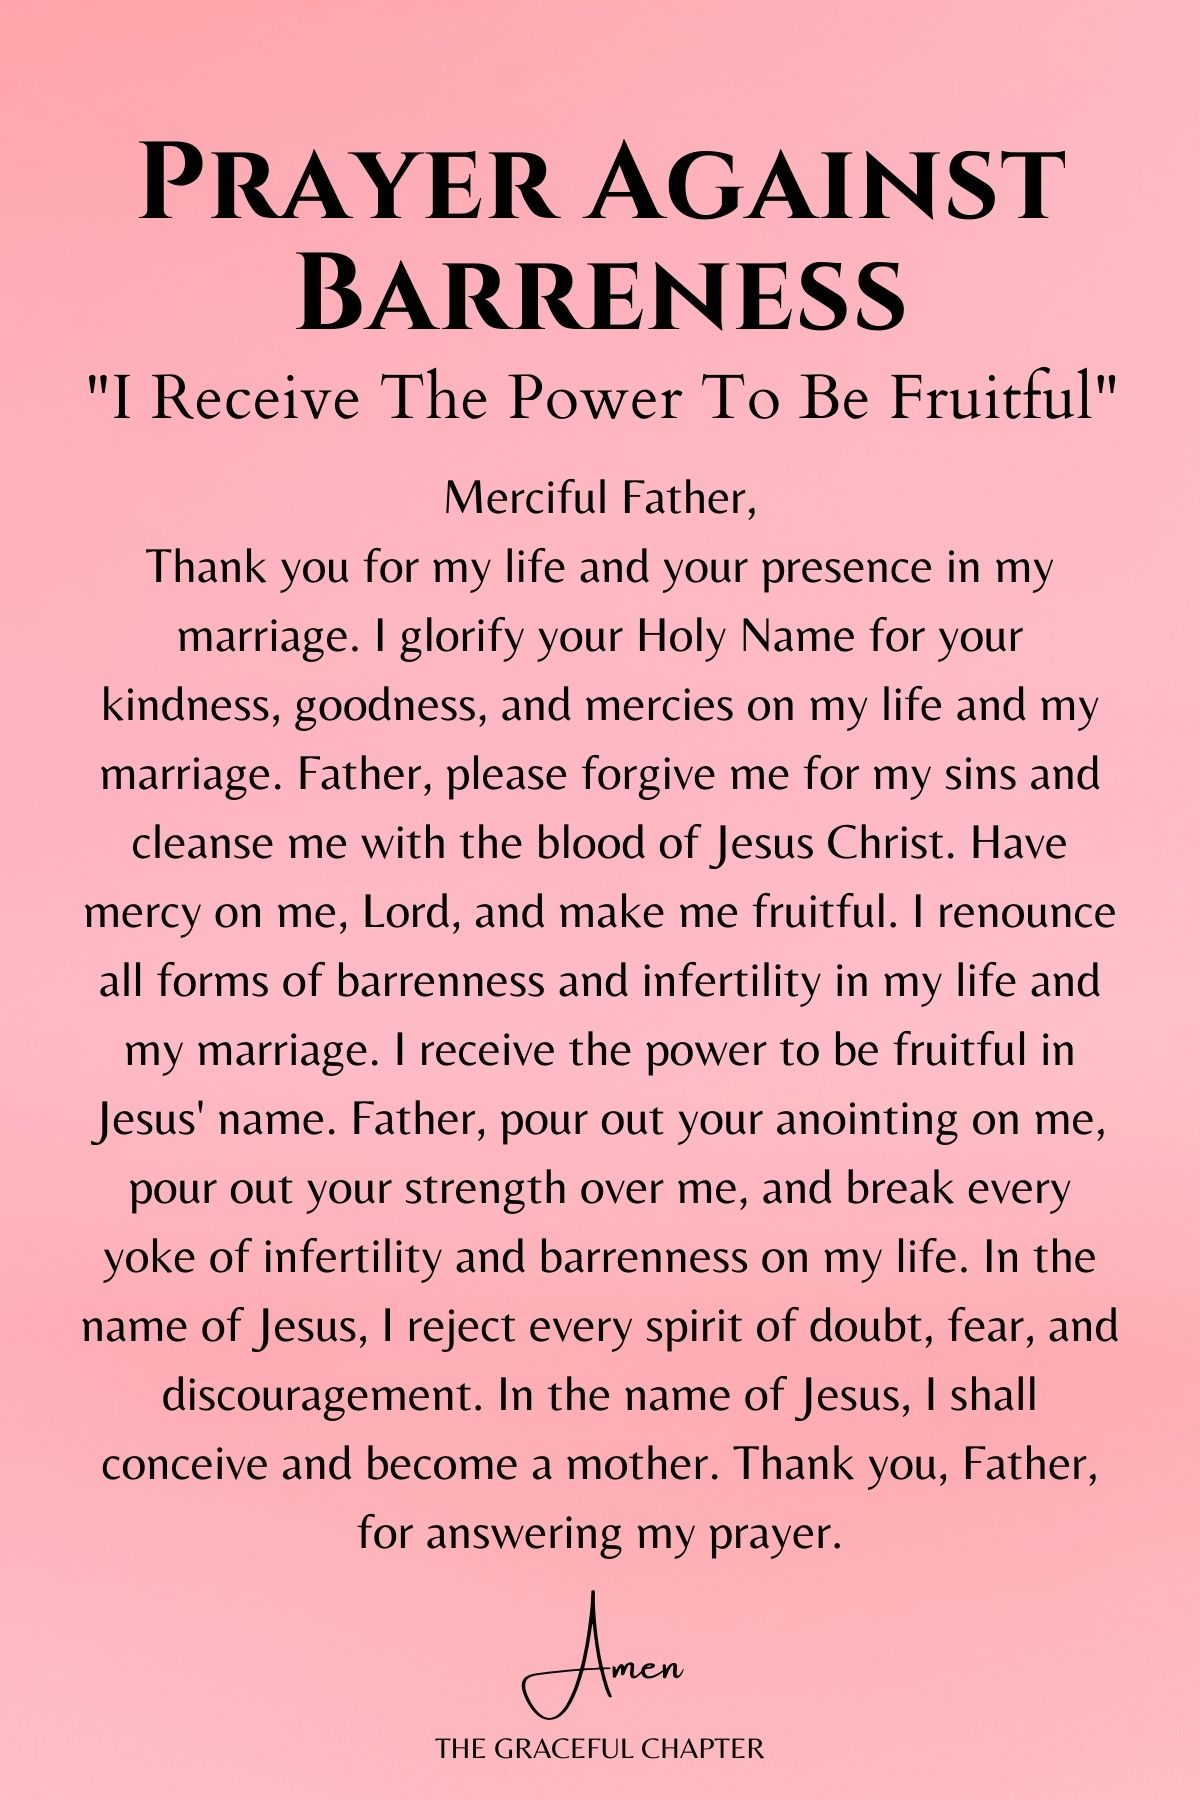 Prayer against infertility - I receive the power to be fruitful